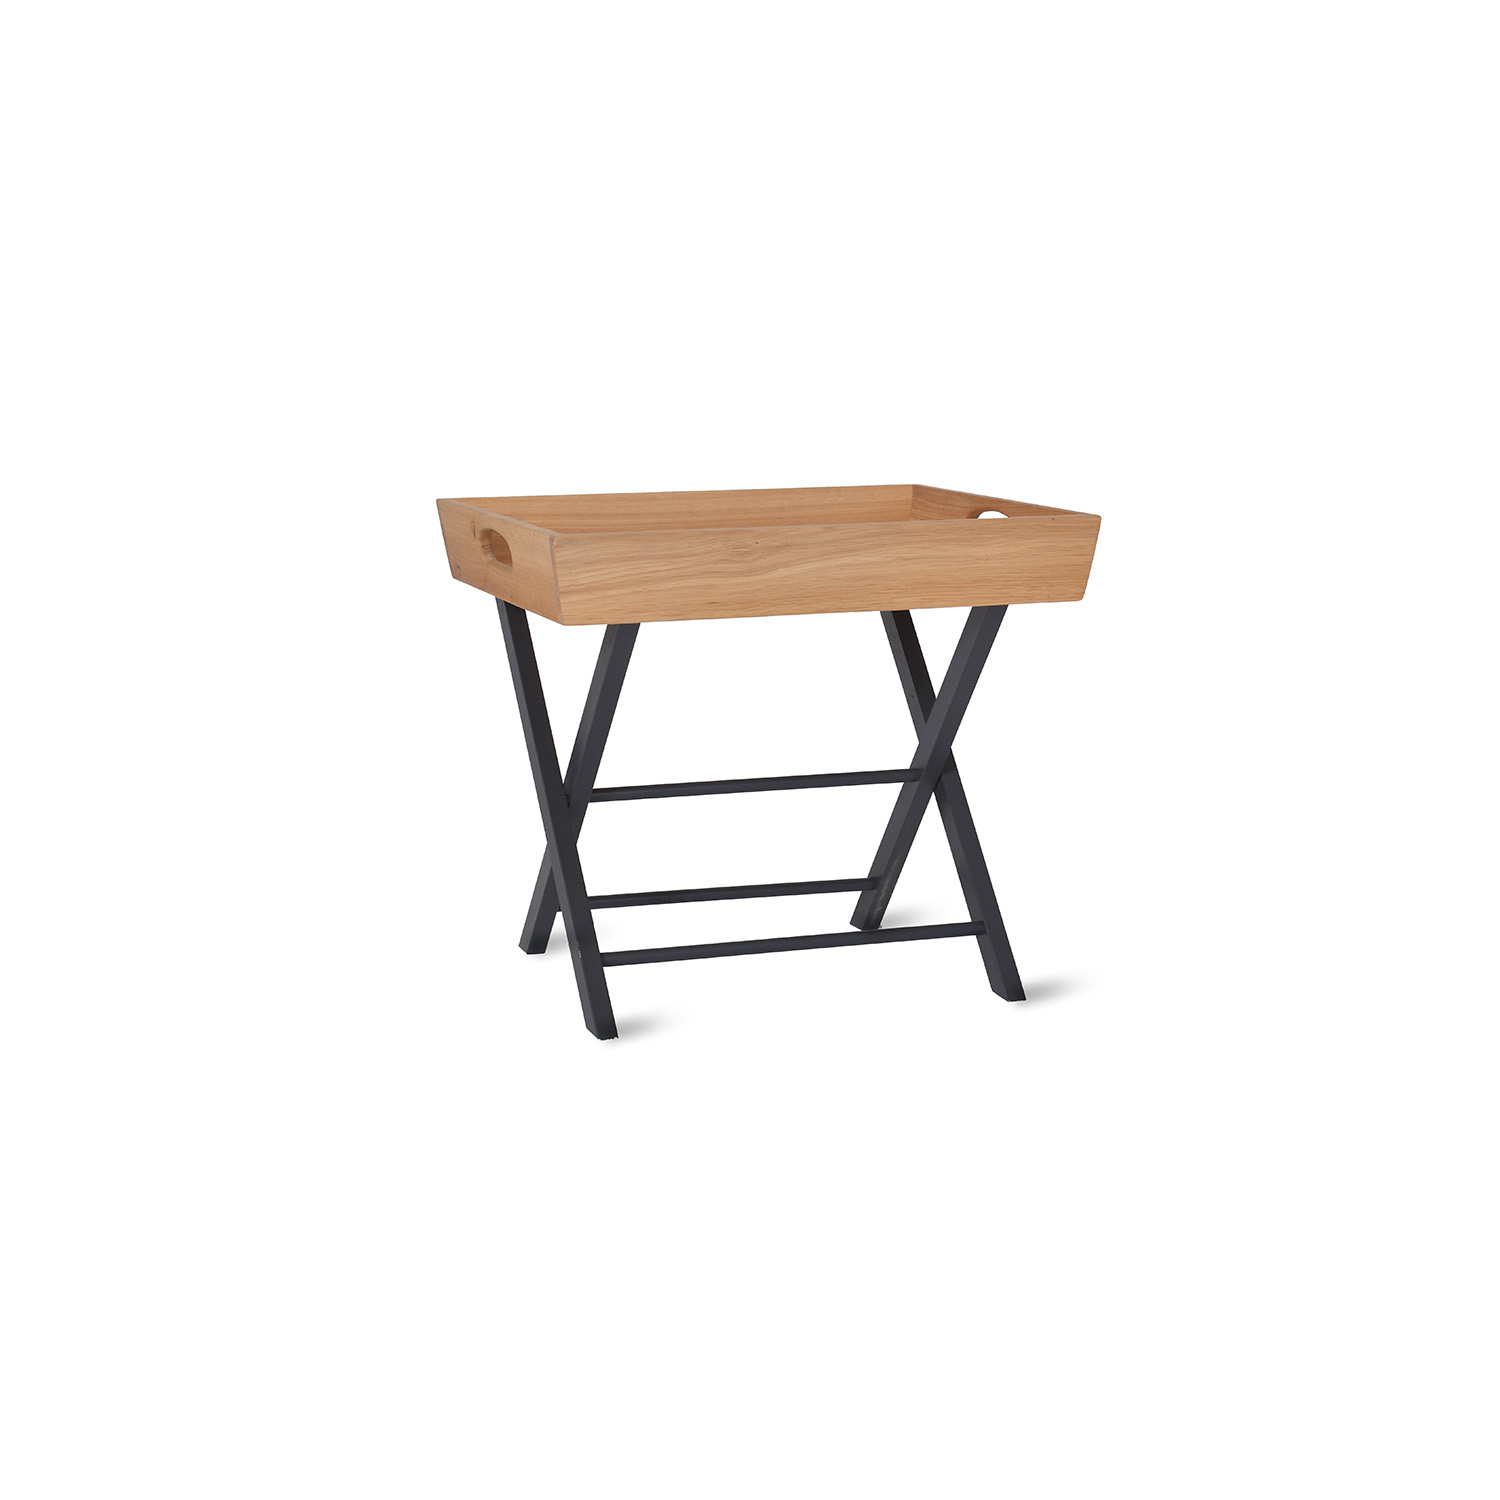 Image of Garden Trading Butlers Side Table, Oak, Carbon